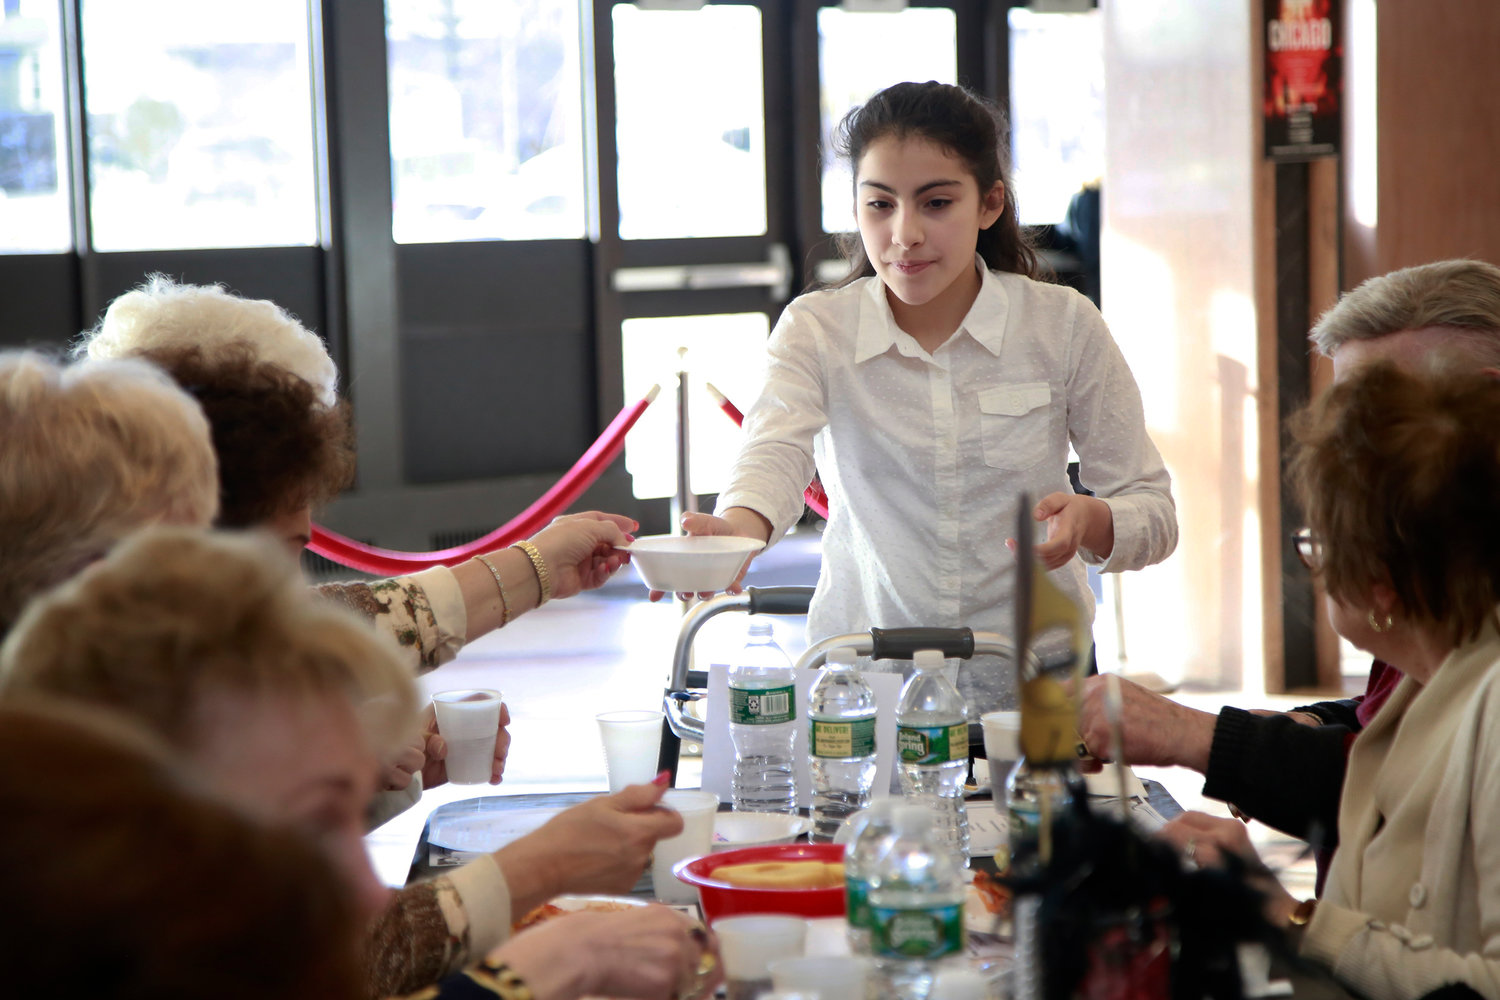 Gabriela Ramirez, a seventh-grade student, volunteered by busing tables.